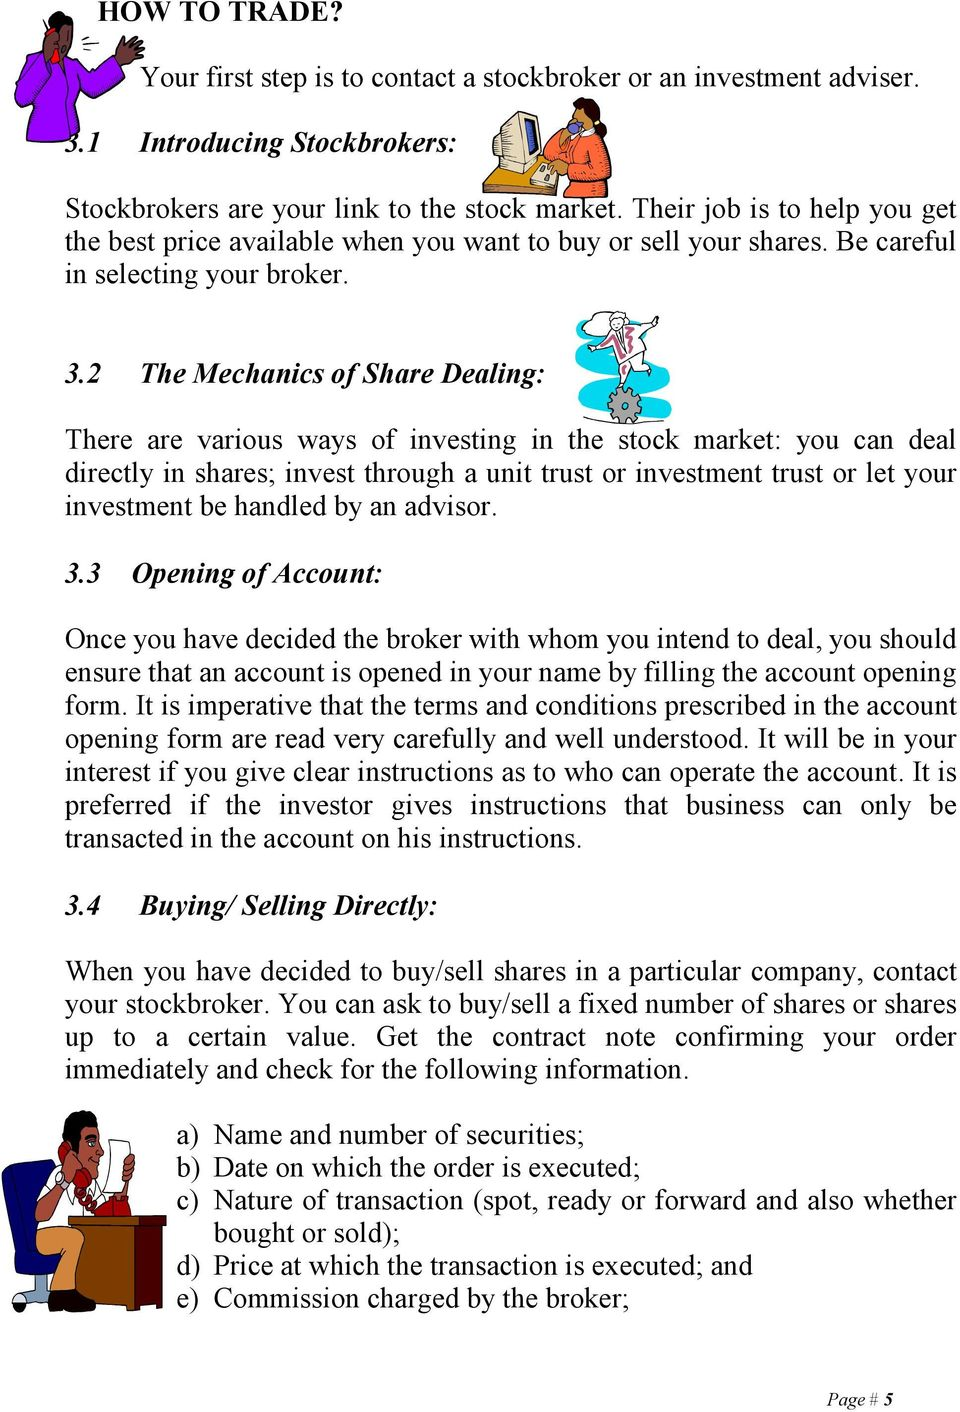 2 The Mechanics of Share Dealing: There are various ways of investing in the stock market: you can deal directly in shares; invest through a unit trust or investment trust or let your investment be